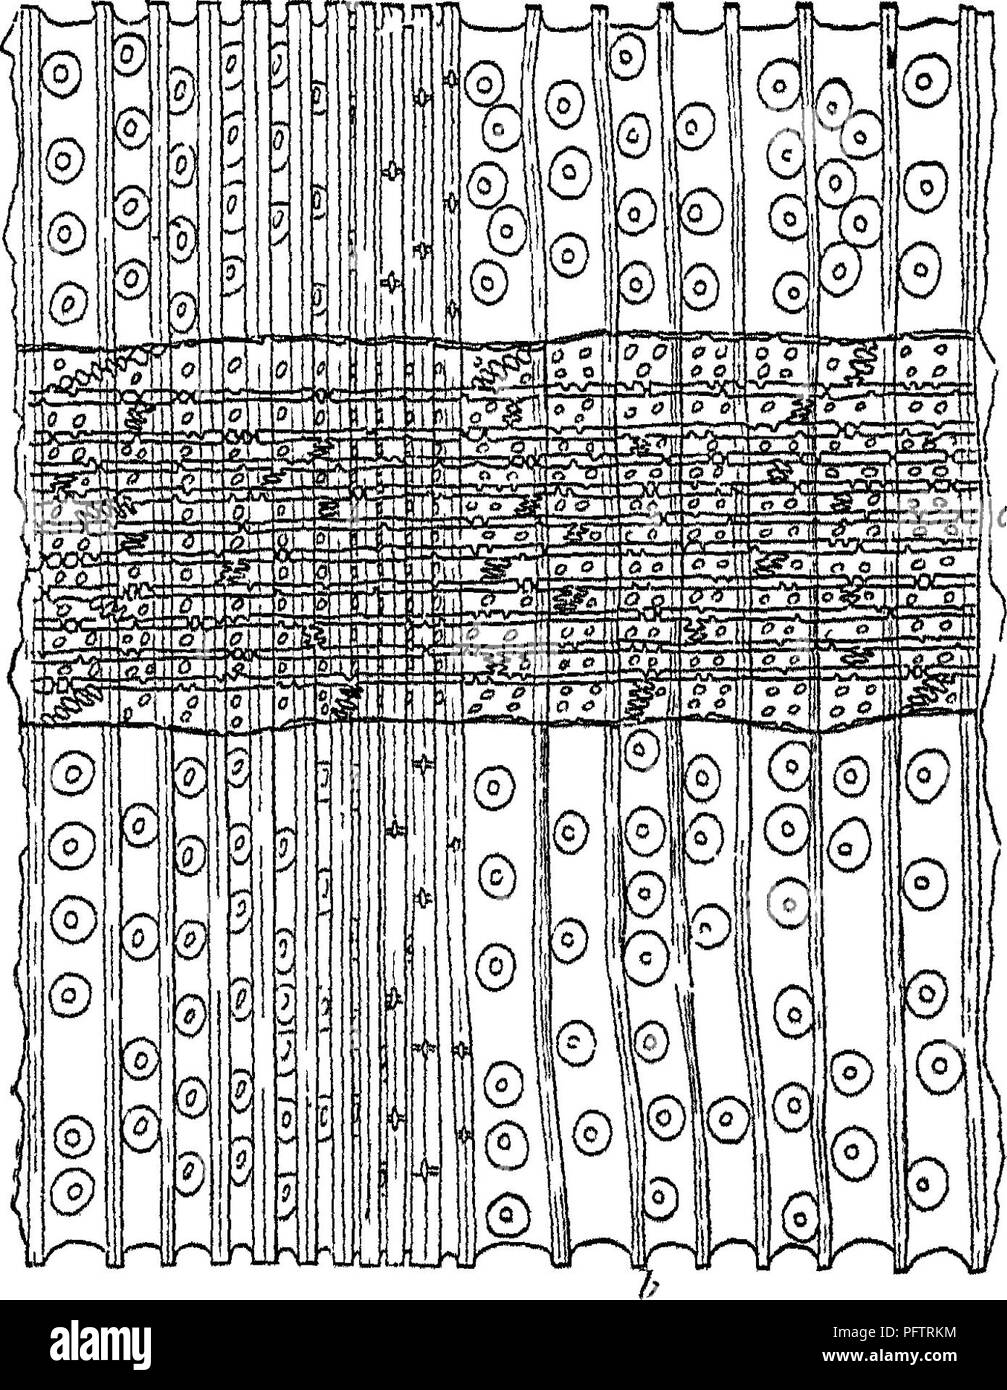 . Wood; a manual of the natural history and industrial applications of the timbers of commerce. Wood; Timber. 20 OF WOOD IN GENERAL running longitudinally. The whole mass of xylem is traversed radially by pith-rays, most of which appear in the transverse sec- Pig. 14.—Resin-duct in coniferous wood, in transverse section, highly magnified, showing the epithelial cells surrounding the duct. tionjof the stem as only one cell in width and made up of cells elongated radially. In a longitudinal and radial section (Pig. 15). Pig, IS.—Badial section of Silver JFir {Jhies pectindta), showing a medullar - Stock Image